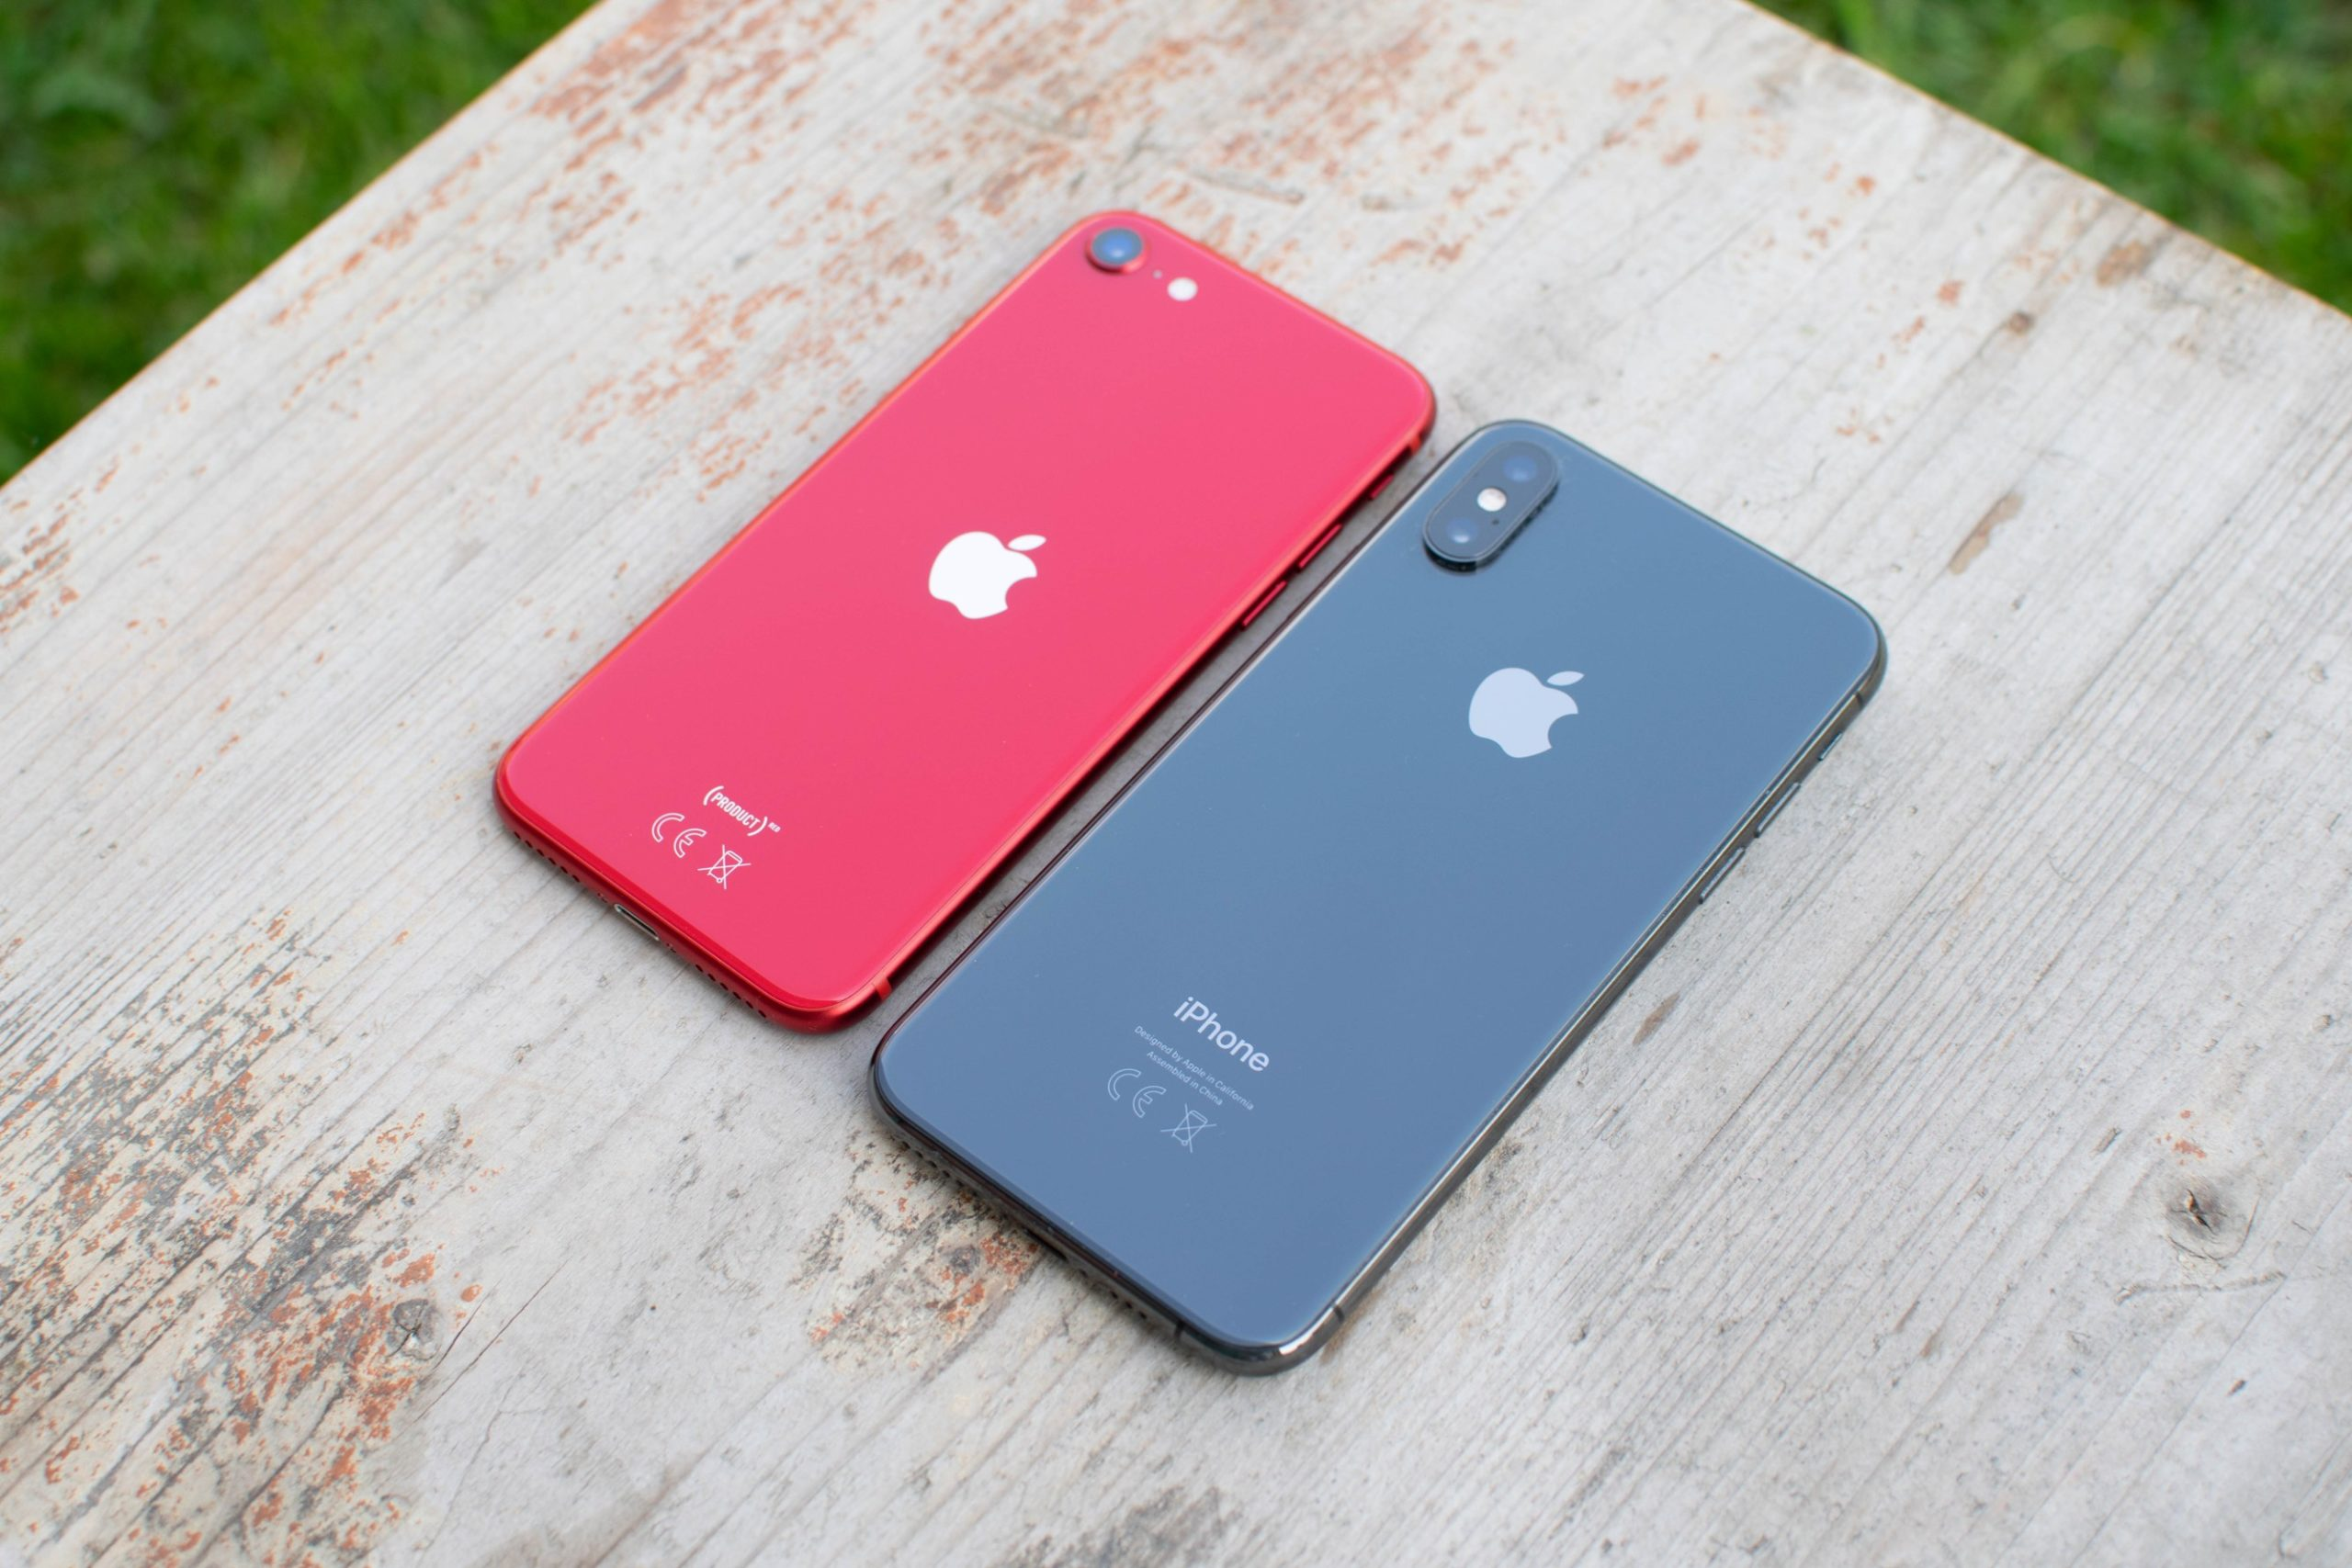 iPhone SE 2 next to iPhone XS